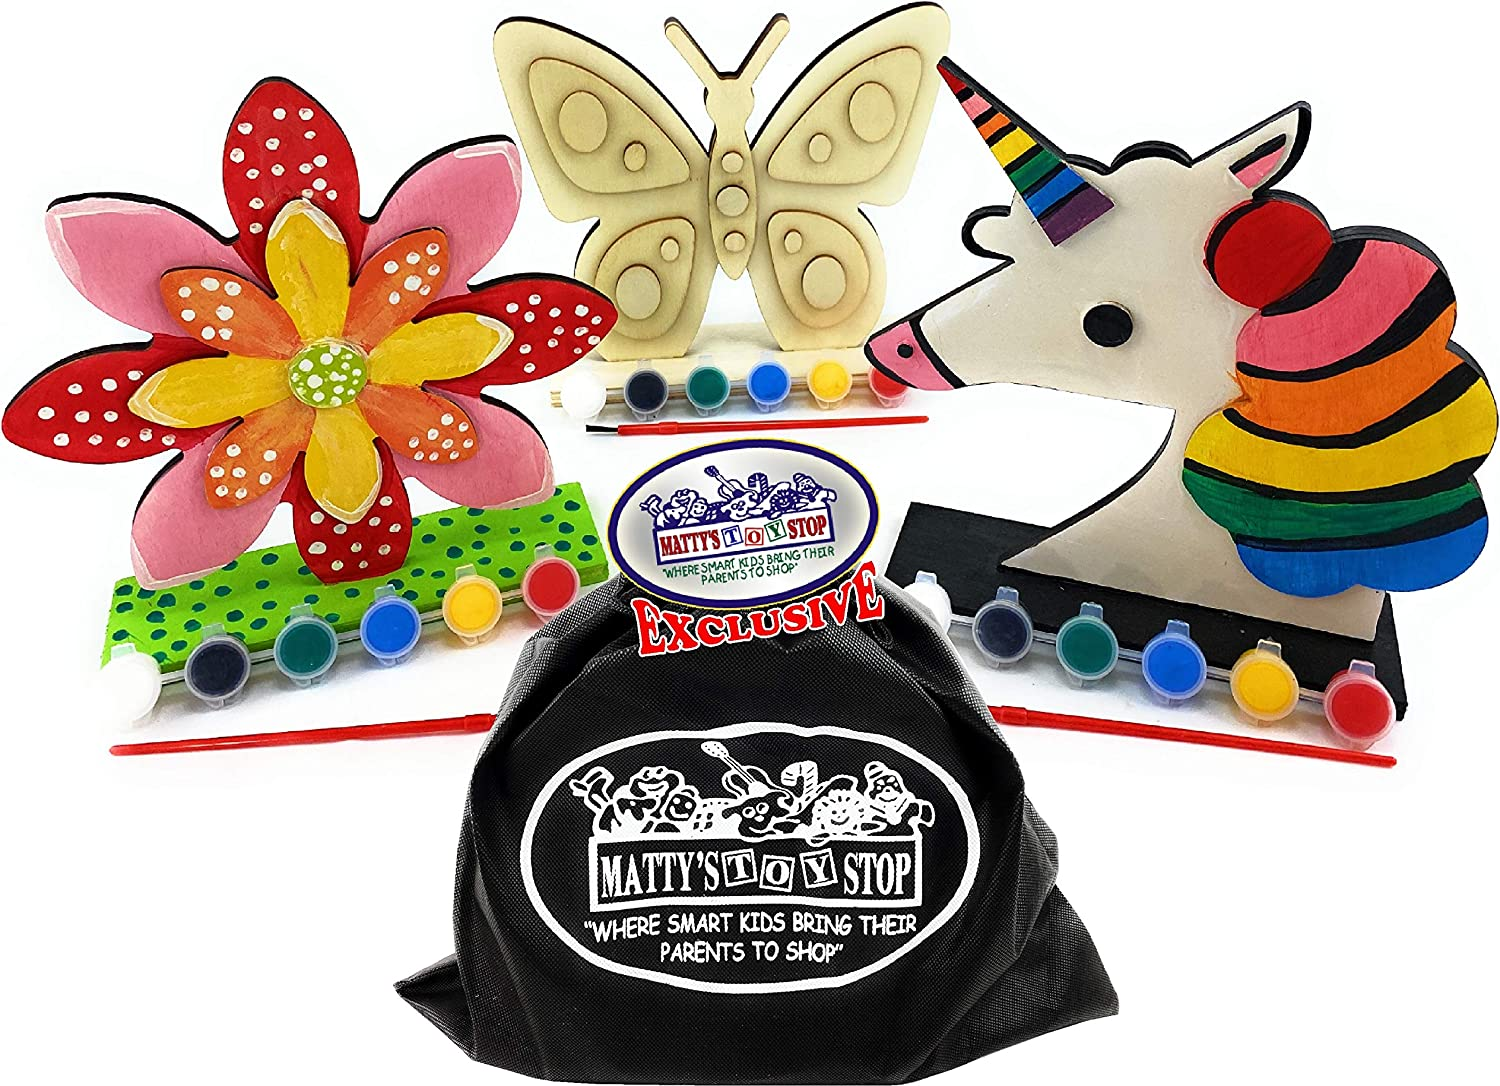 Mattys Toy Stop Deluxe Paint Your Own Stand-Up Wooden Unicorn Paint Brush /& Storage Bag Butterfly /& Flower Craft with Paint 3 Pack